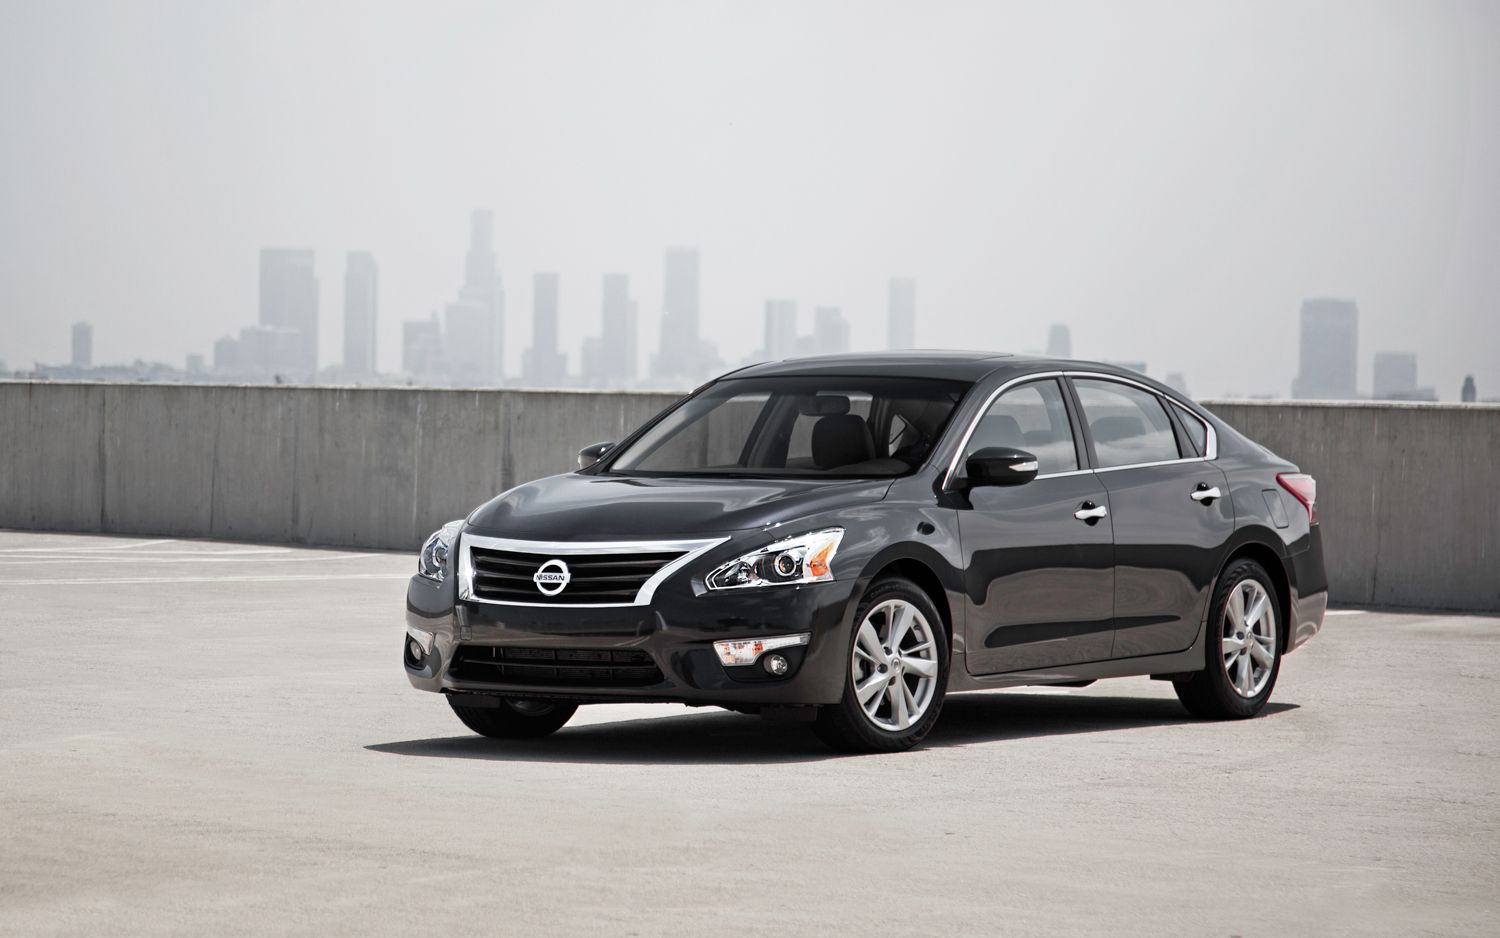 2013 Nissan Altima Earns Five Star Safety Rating From NHTSA